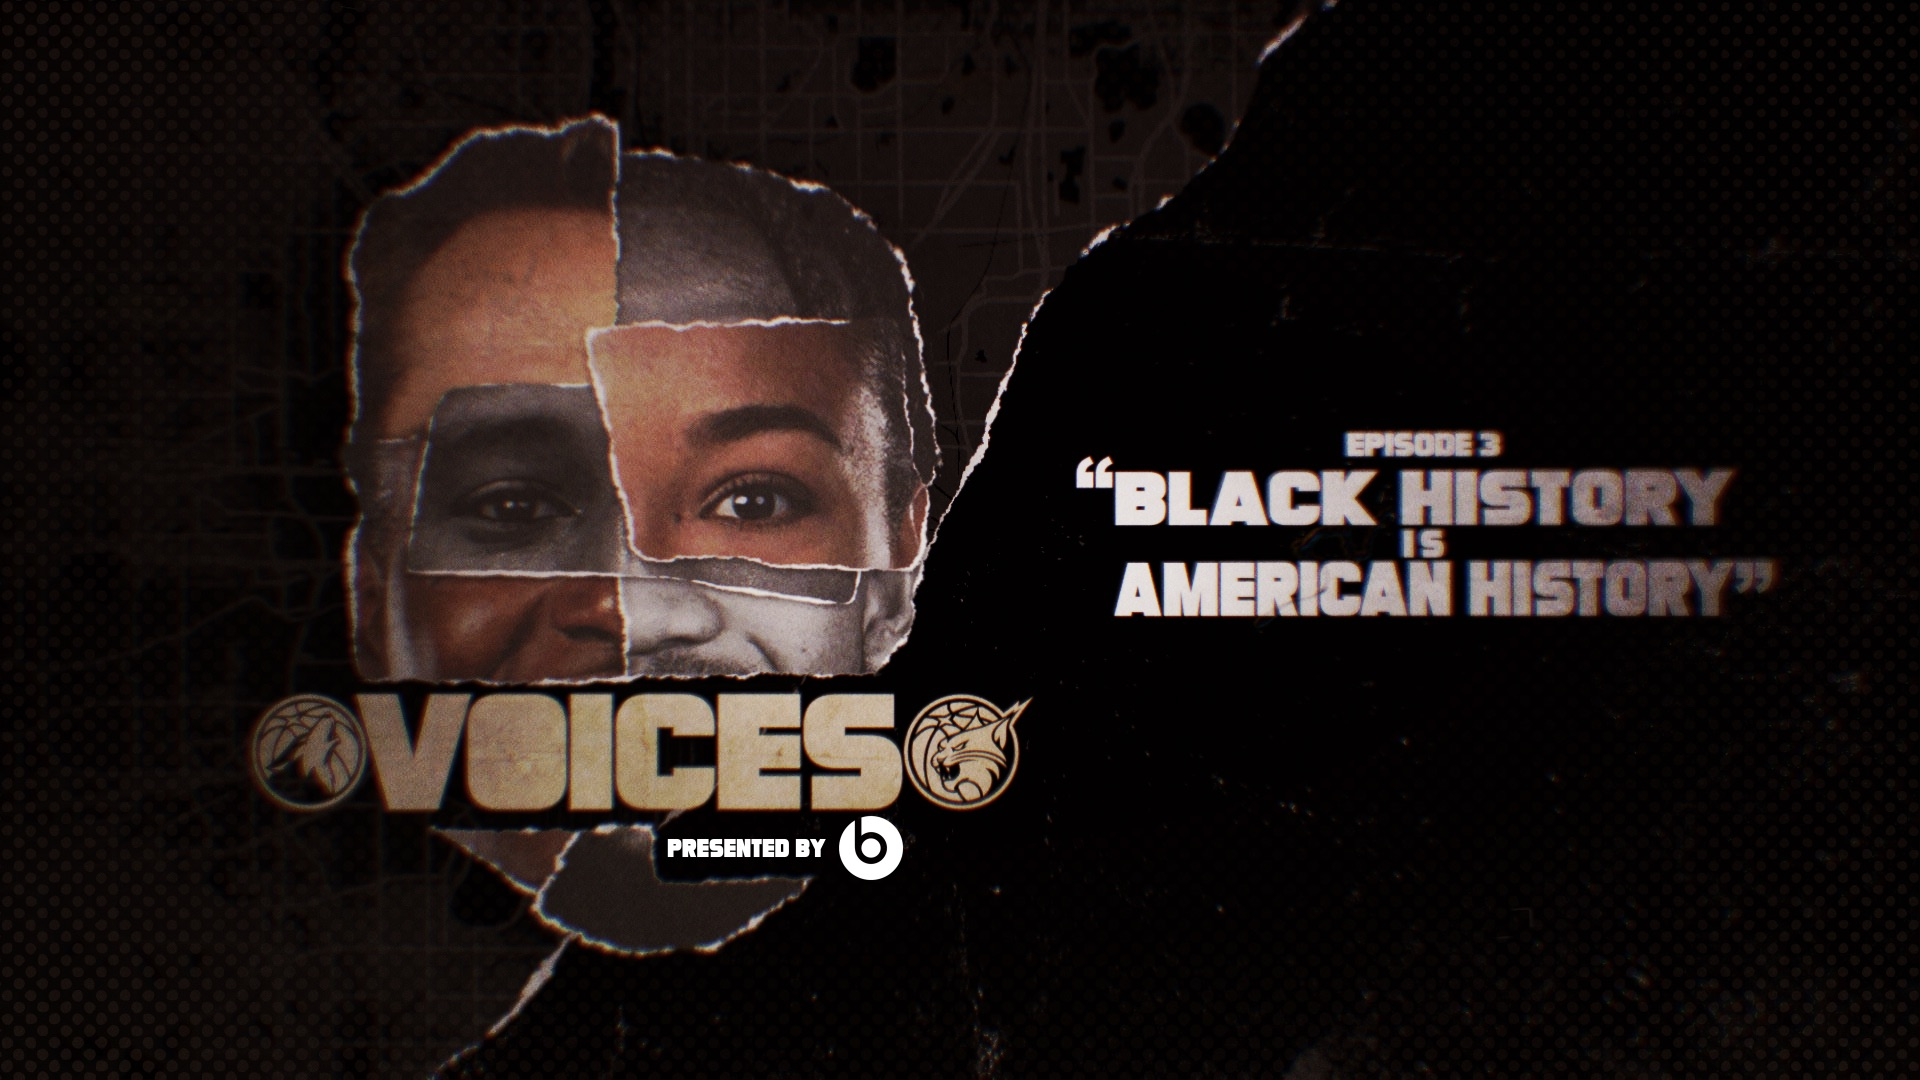 VOICES: Black History is American History